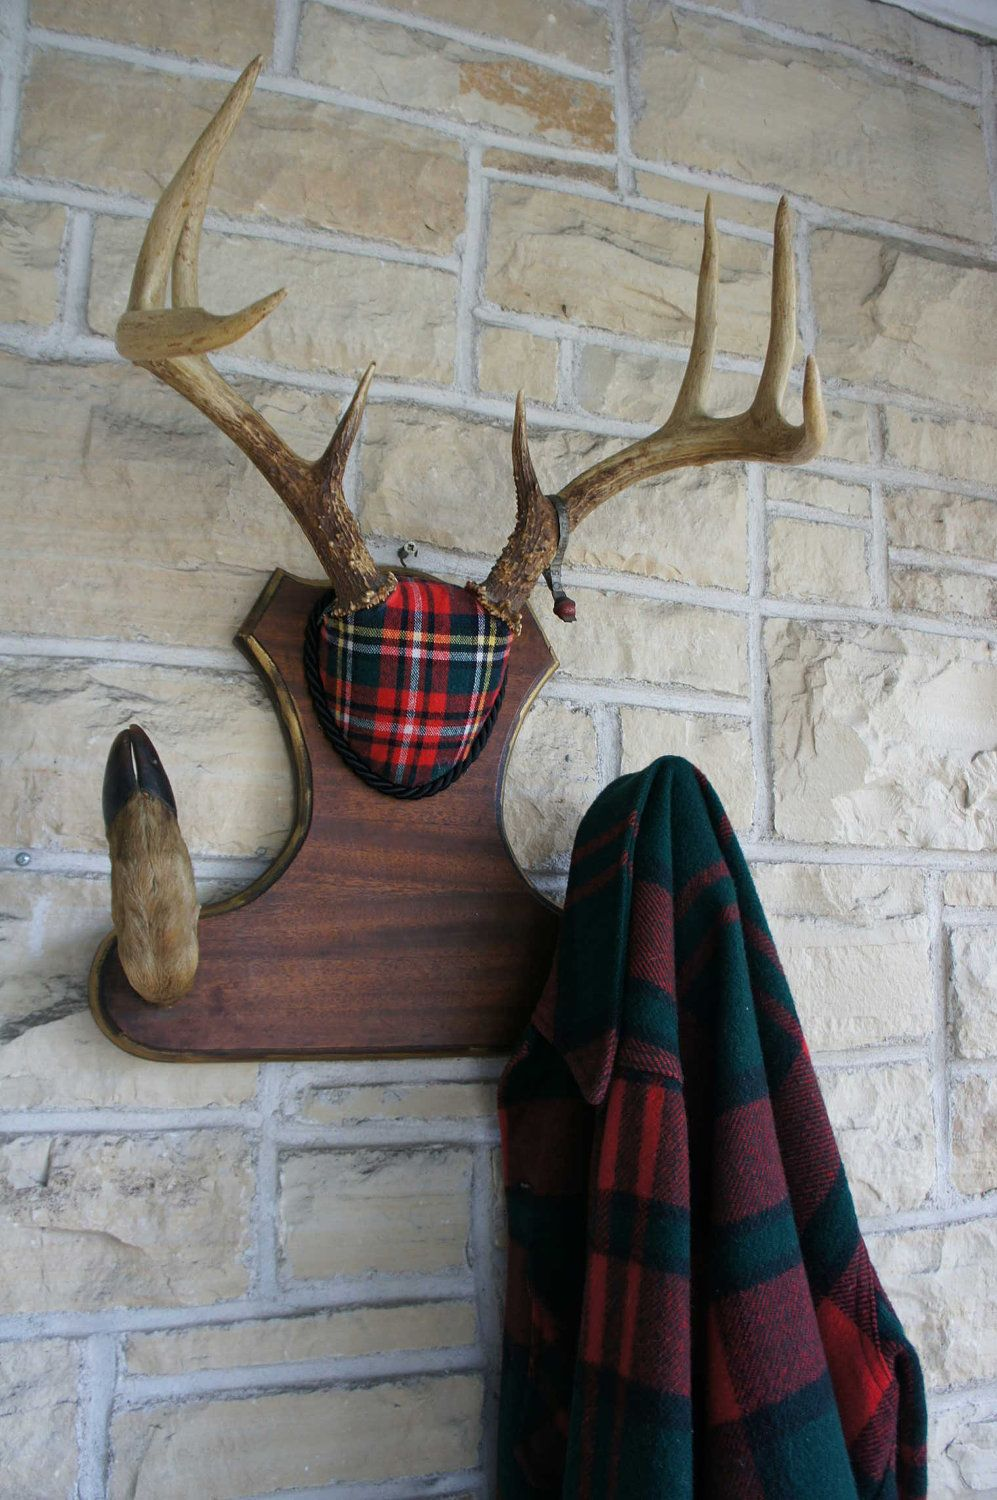 vintage deer antler mount coat hat hook plaid woodland decor unique taxidermy 1951